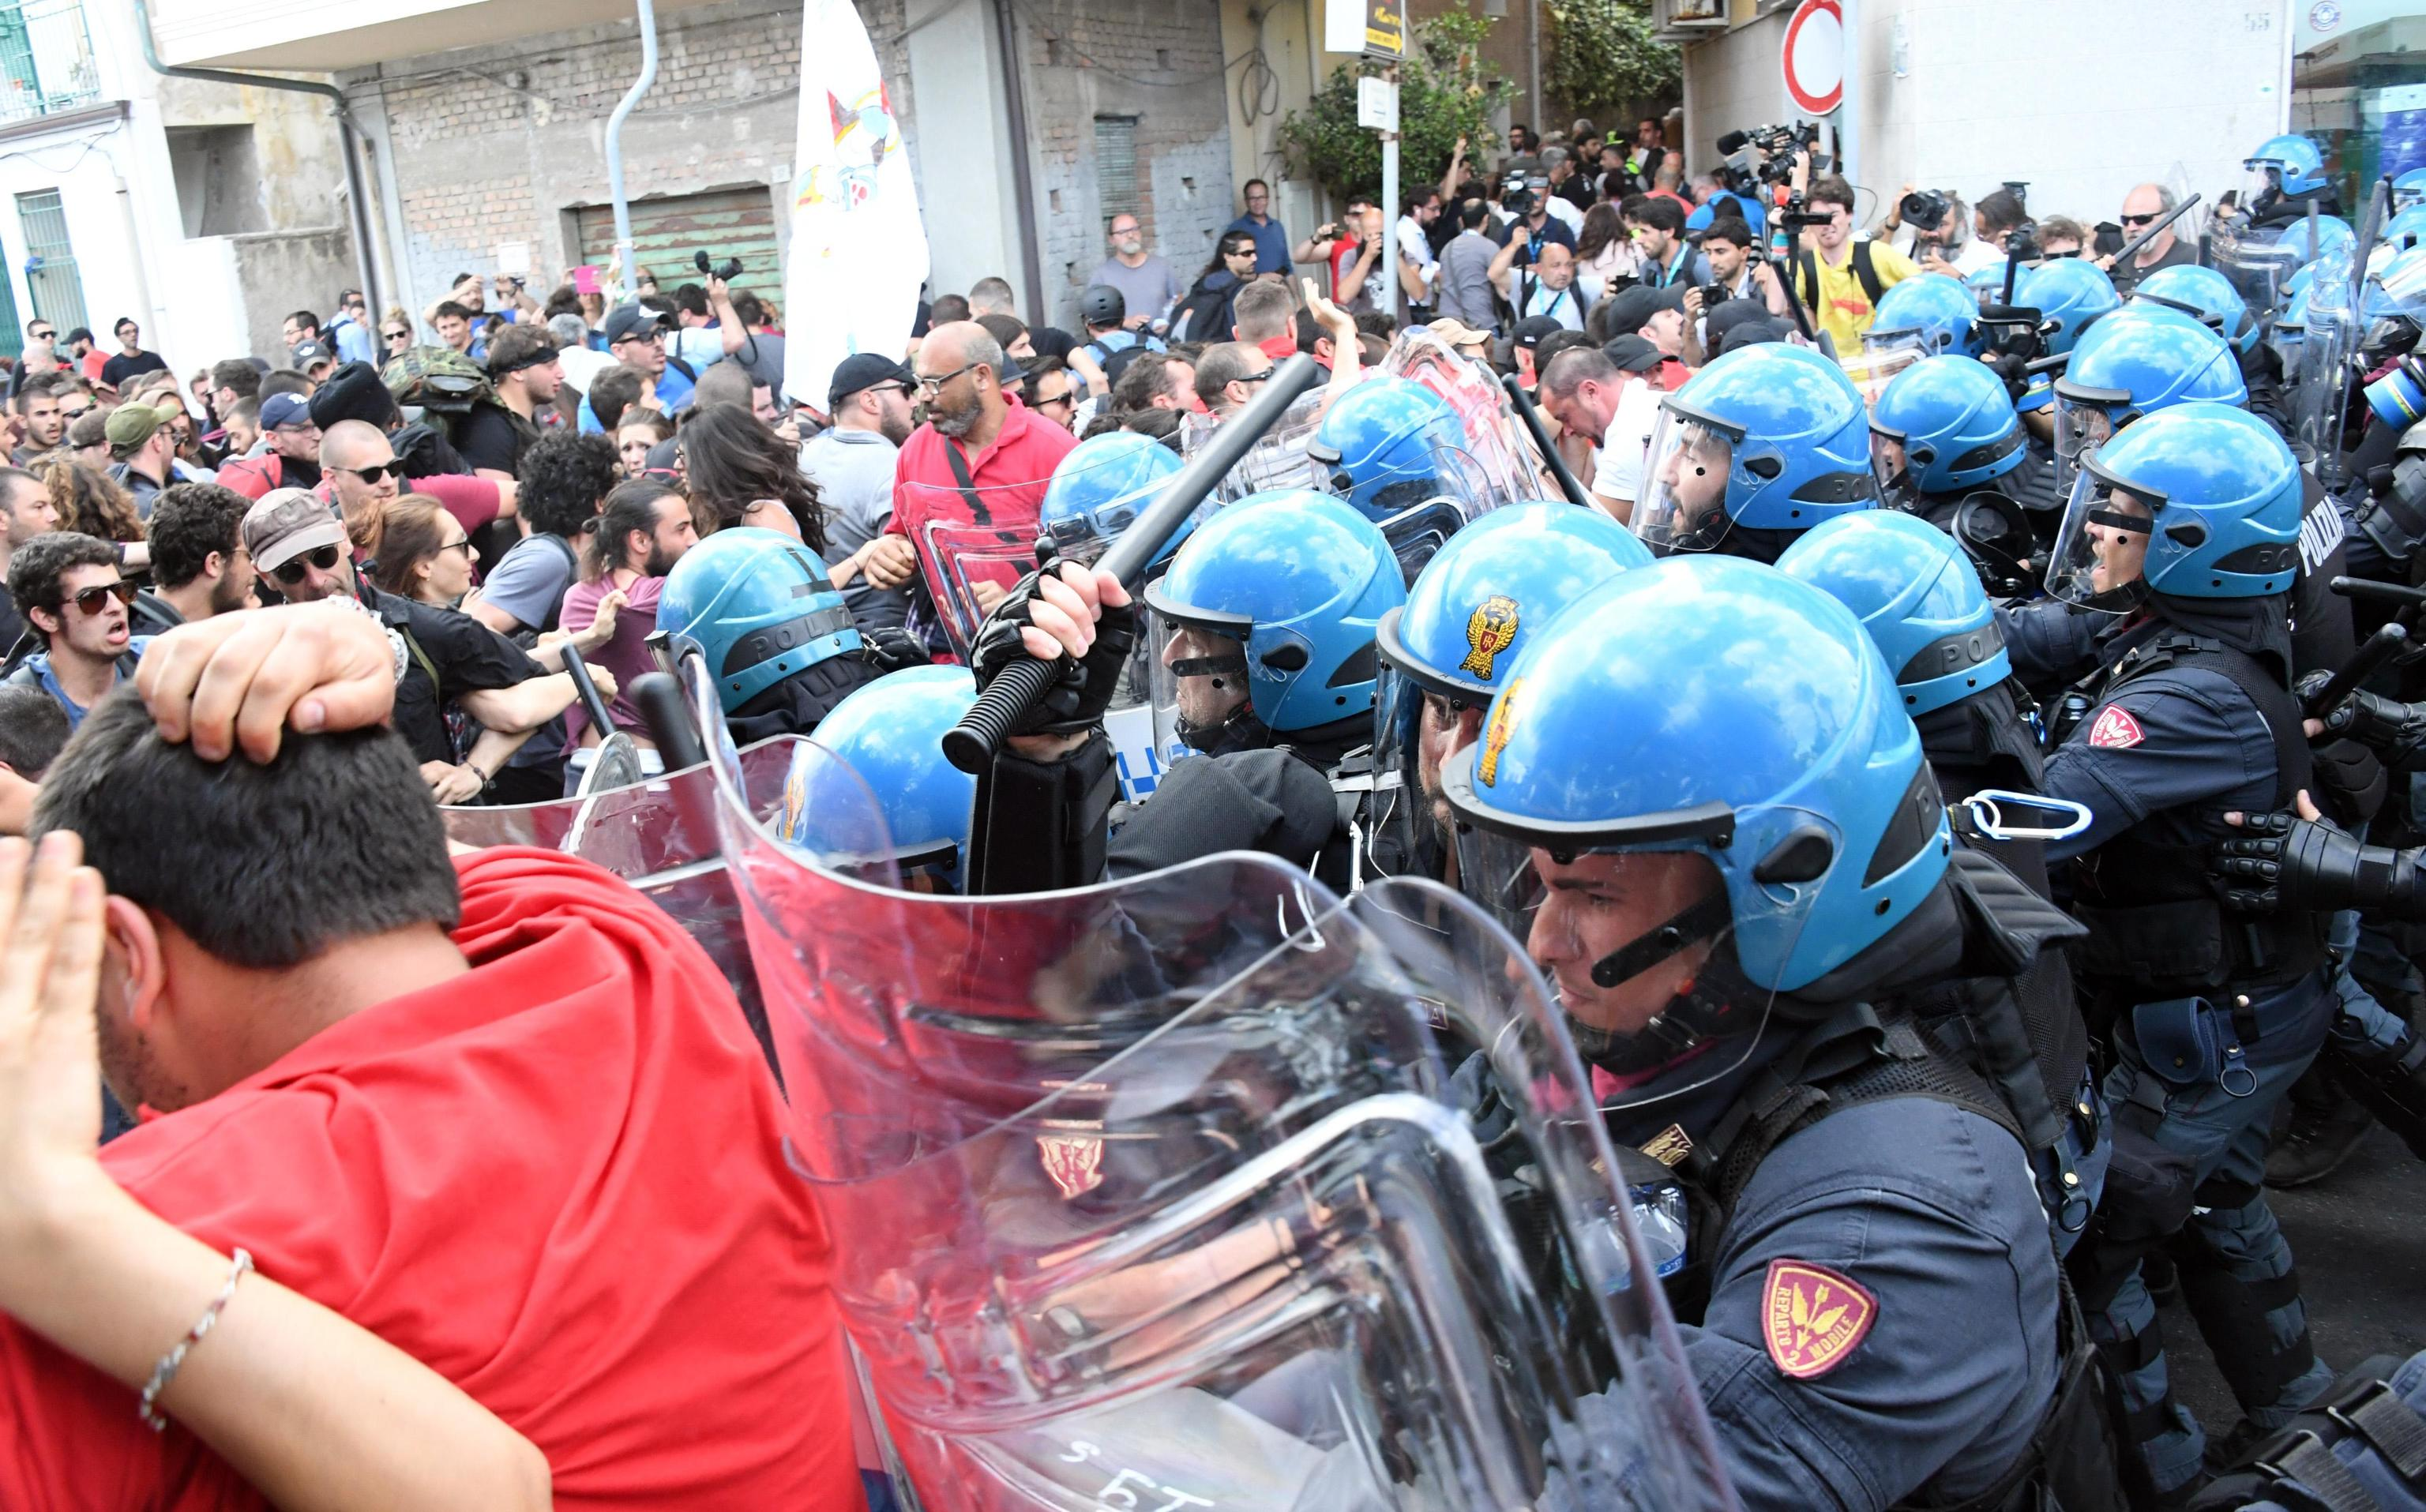 G7 Summit in Taormina Clashes between police and demonstrators